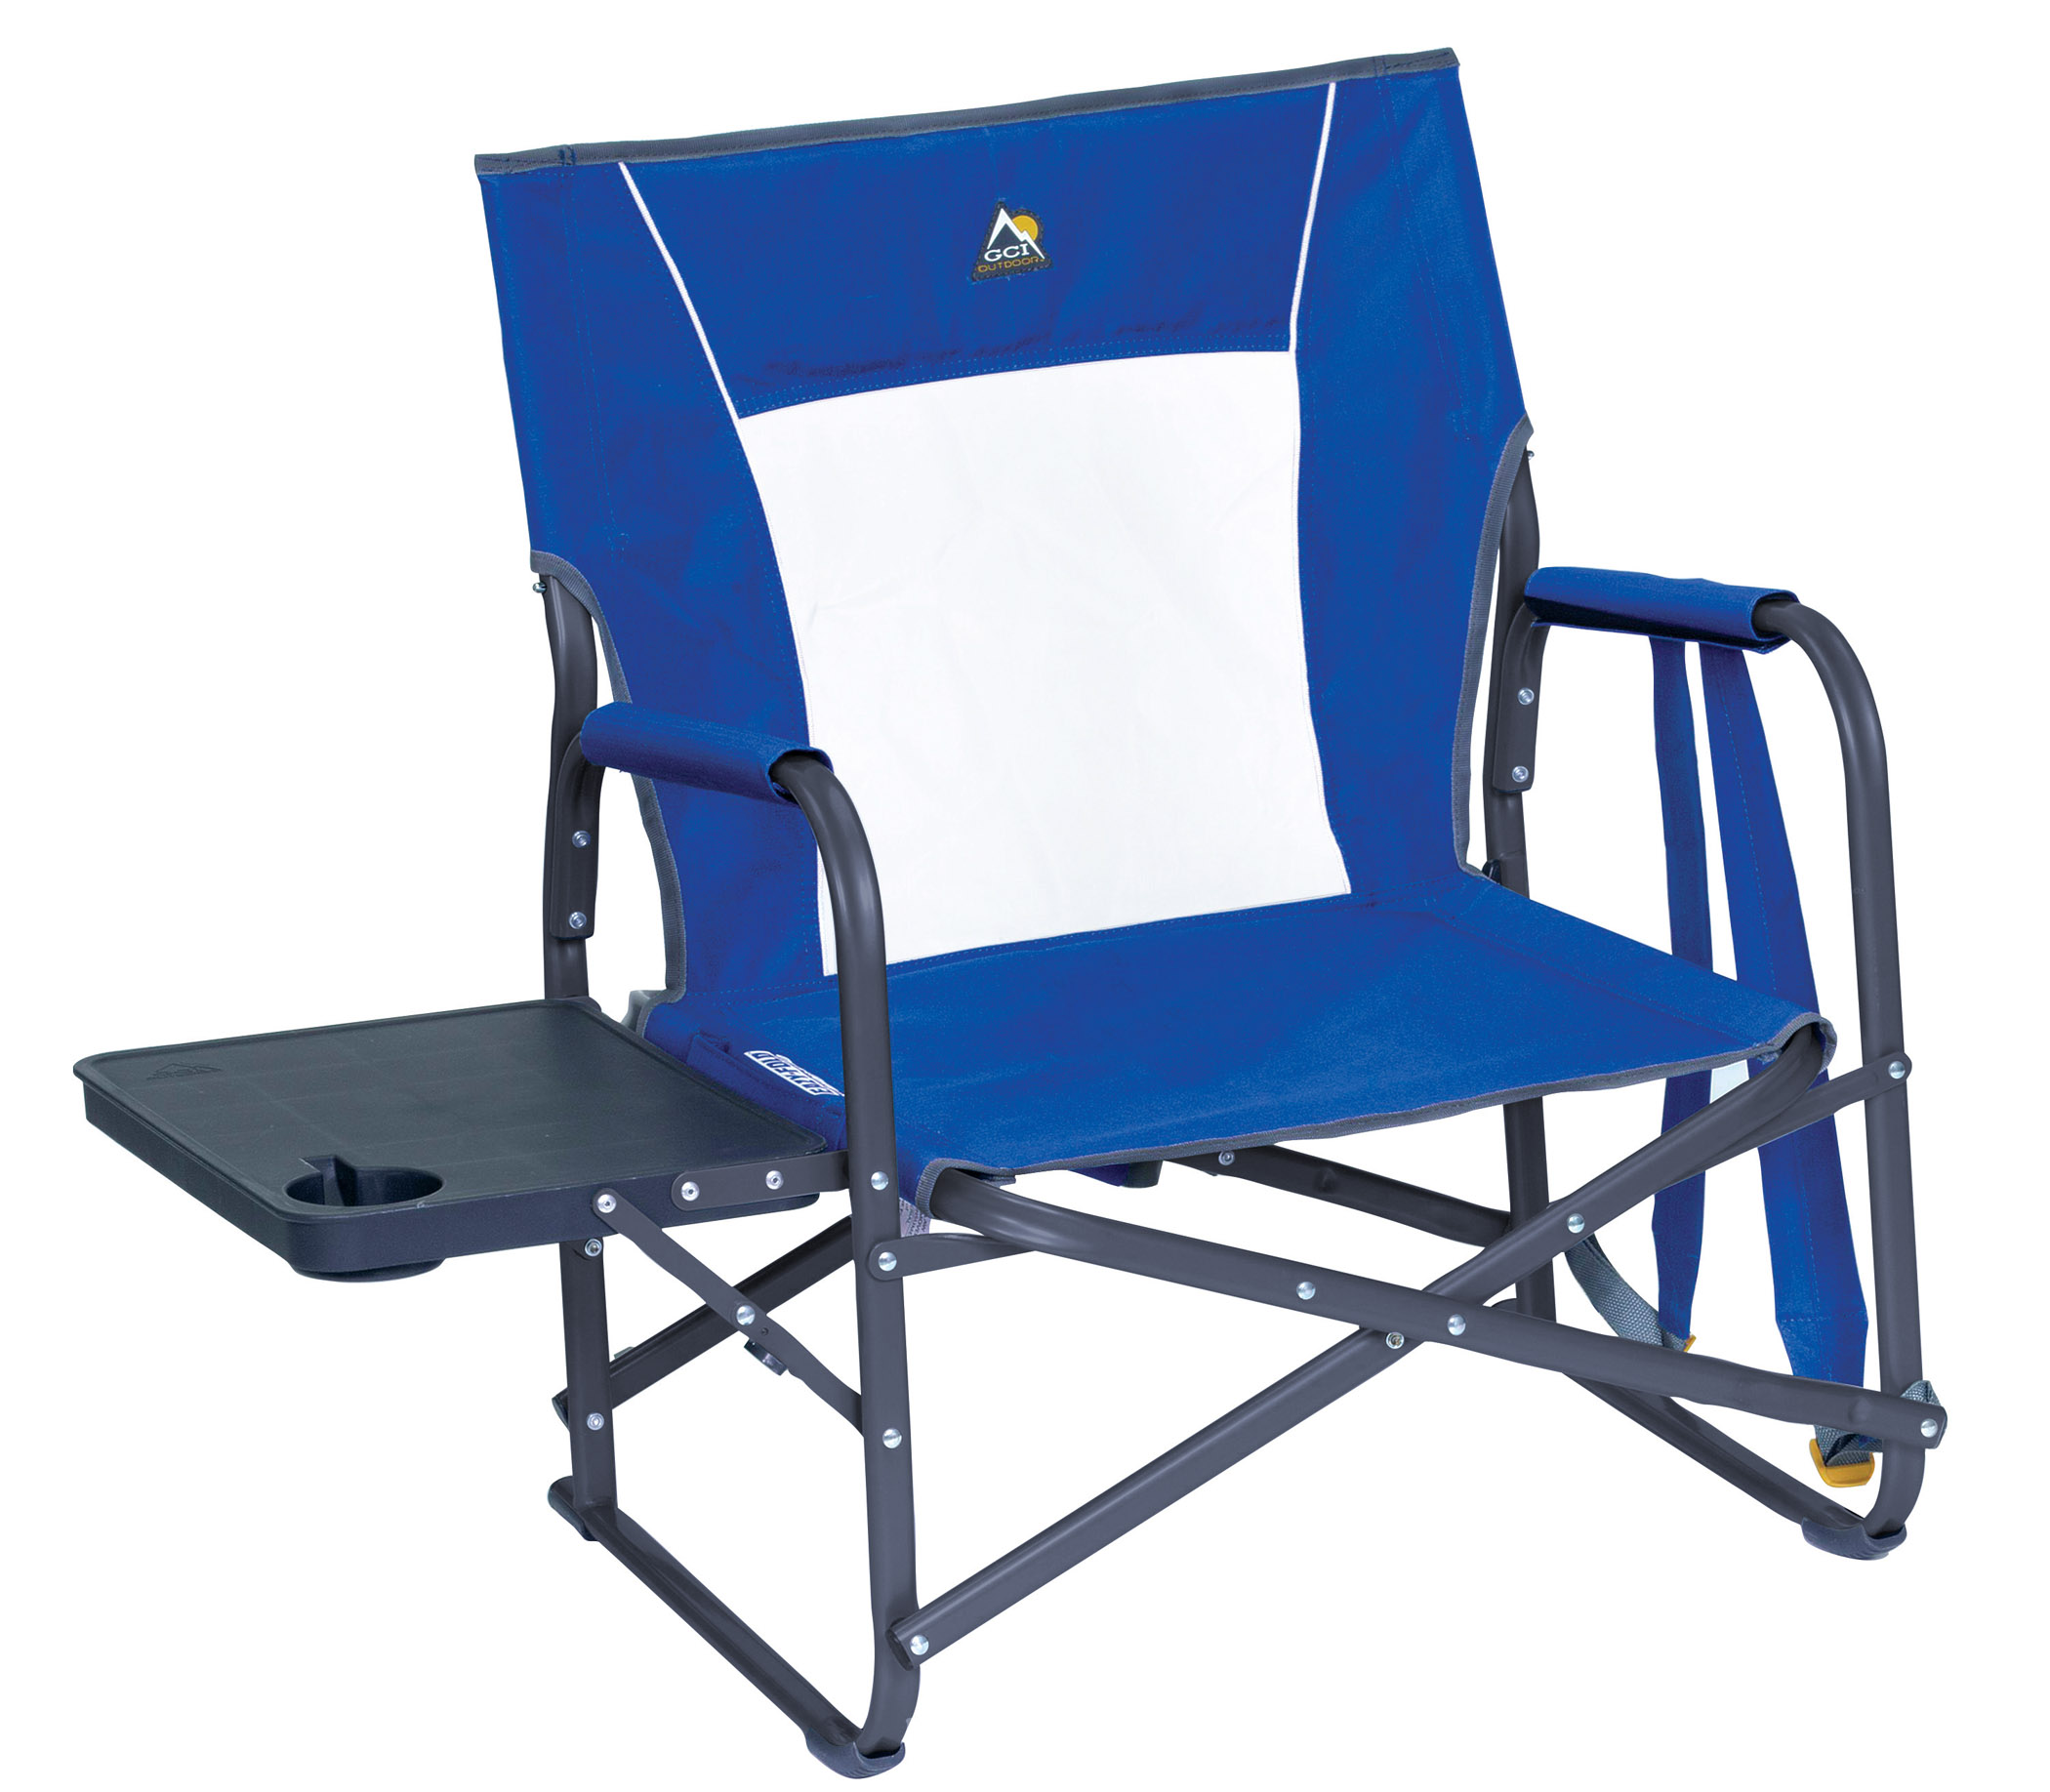 IMPRINTED Slim Fold Event Chair by GCI Outdoor Custom Chair Designer